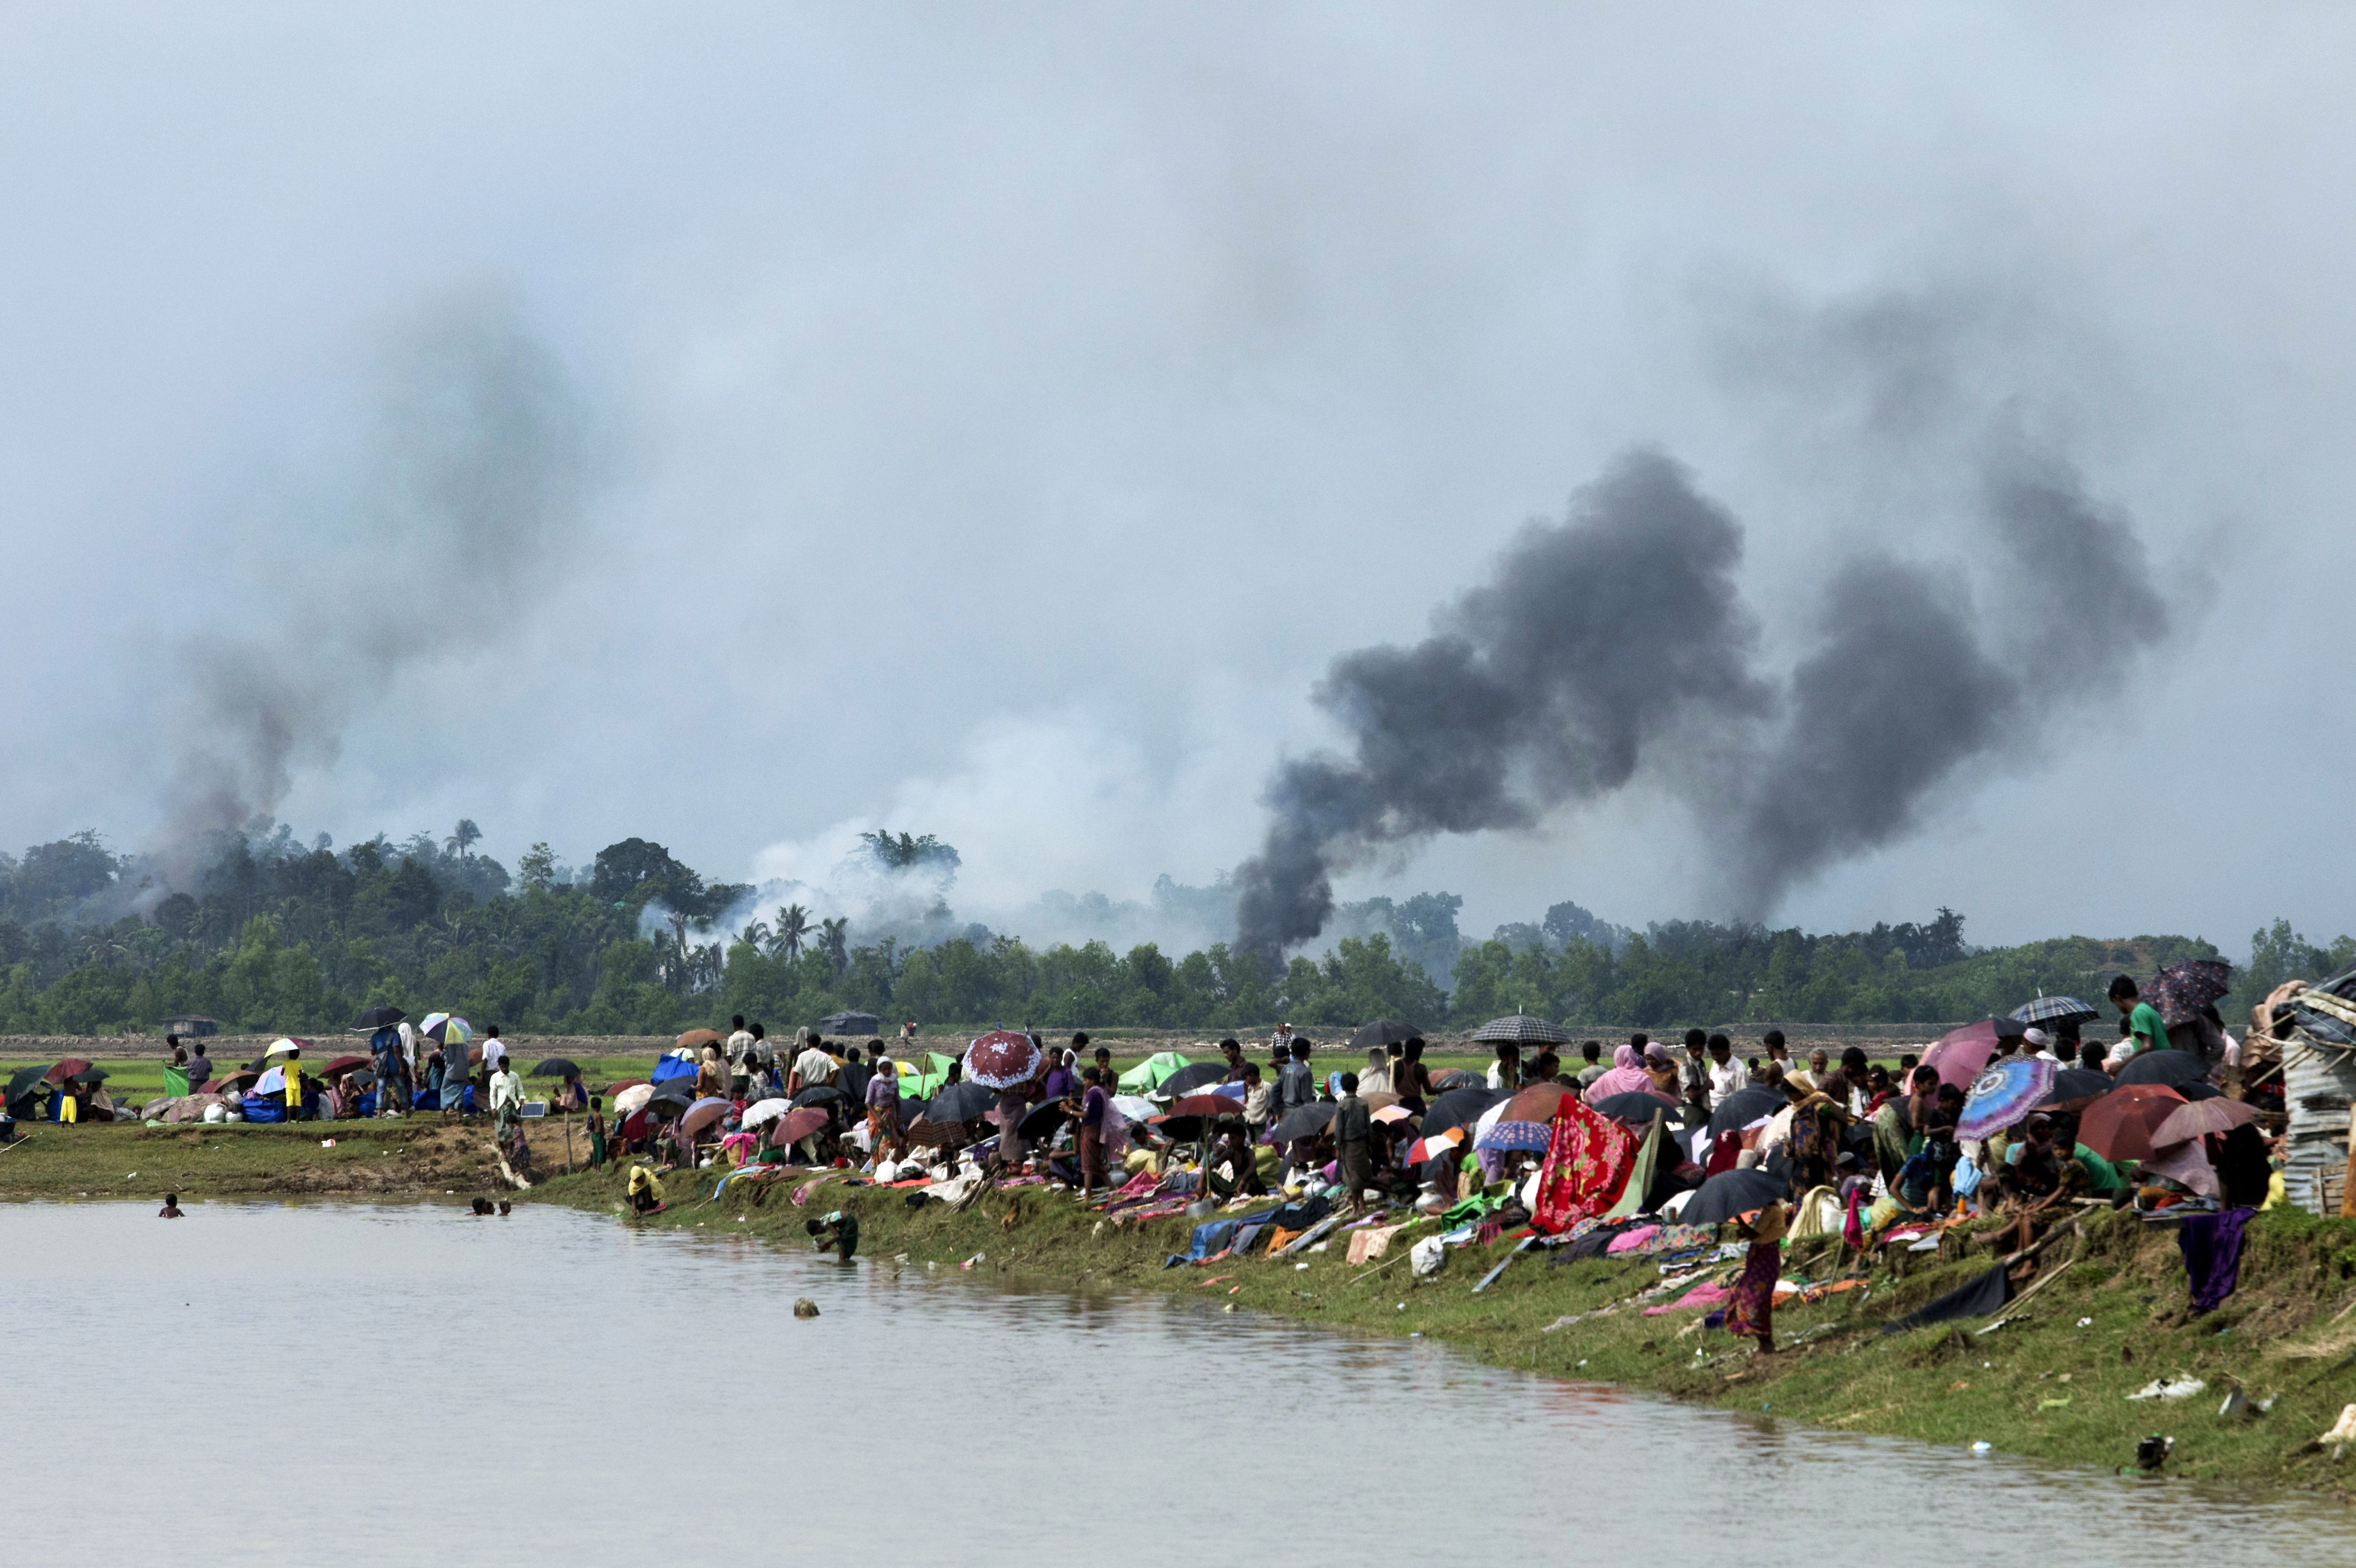 Smoke billows above what is believed to be a burning village in Myanmar's Rakhine state as members of the Rohingya Muslim minority take shelter in Ukhia, Bangladesh on Sept. 4, 2017.